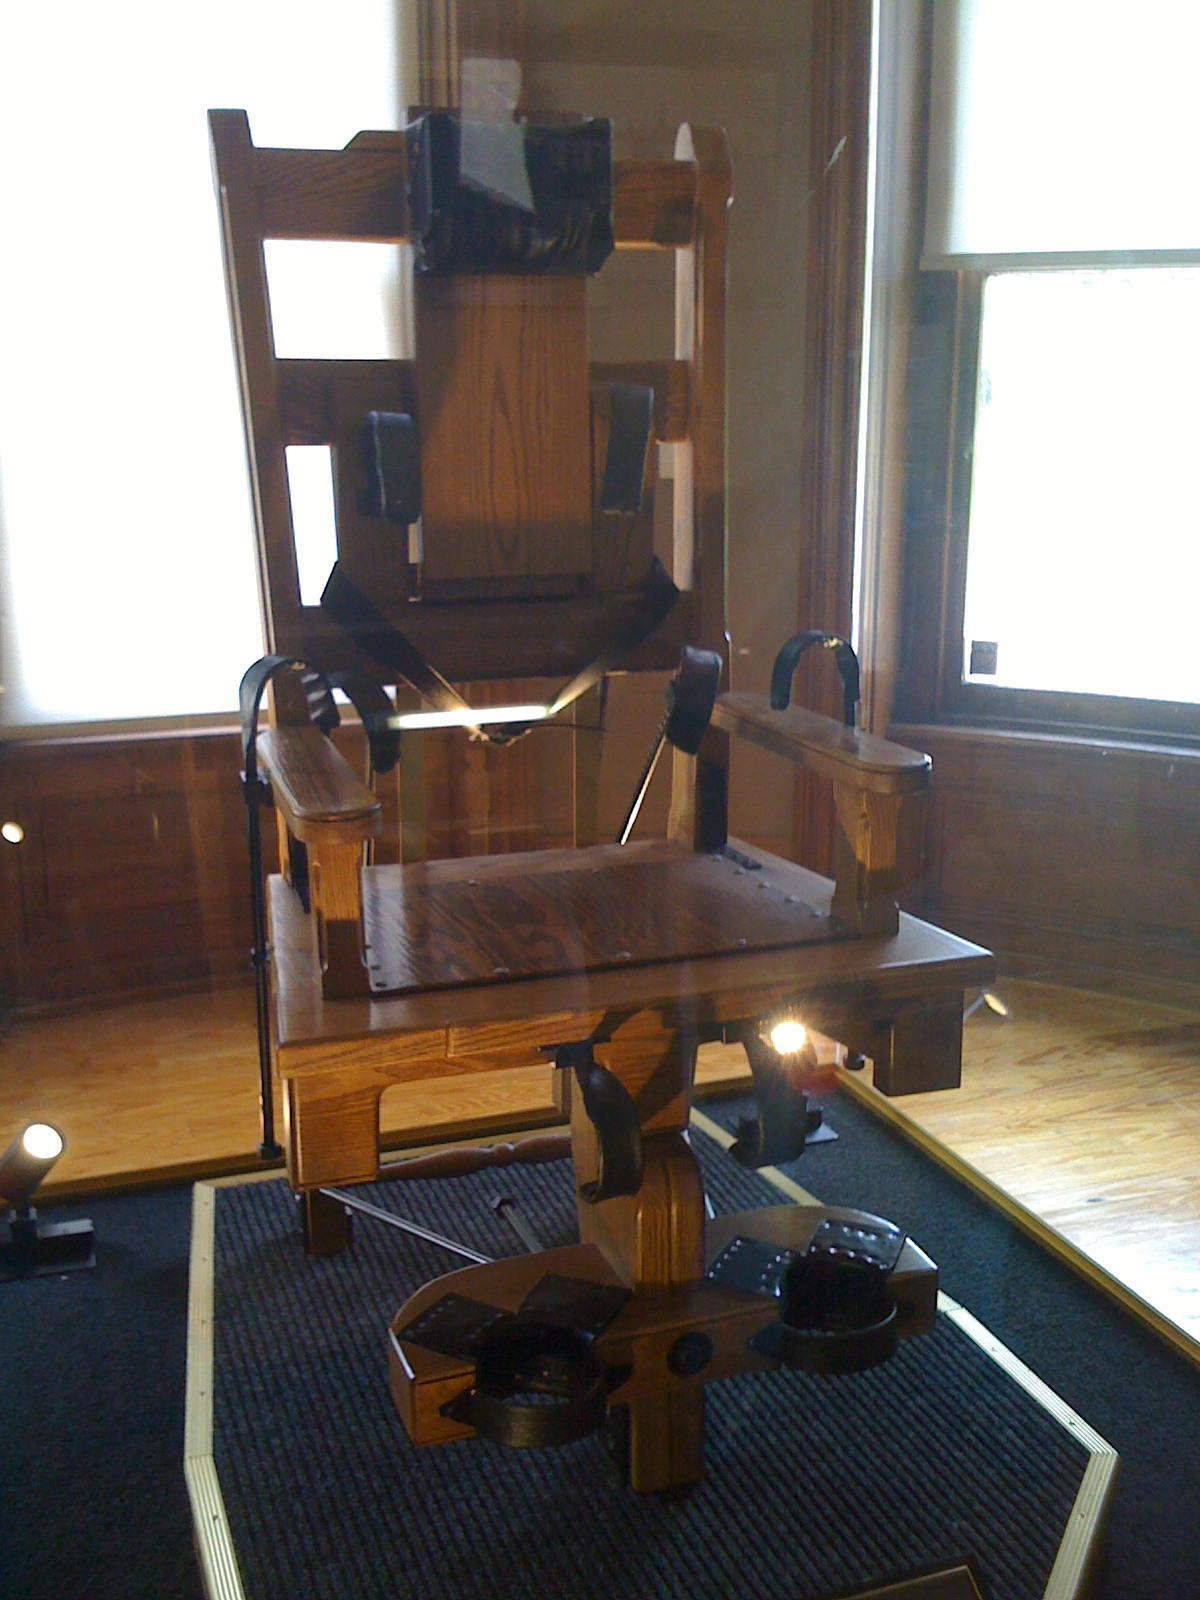 Replica of the electric chair